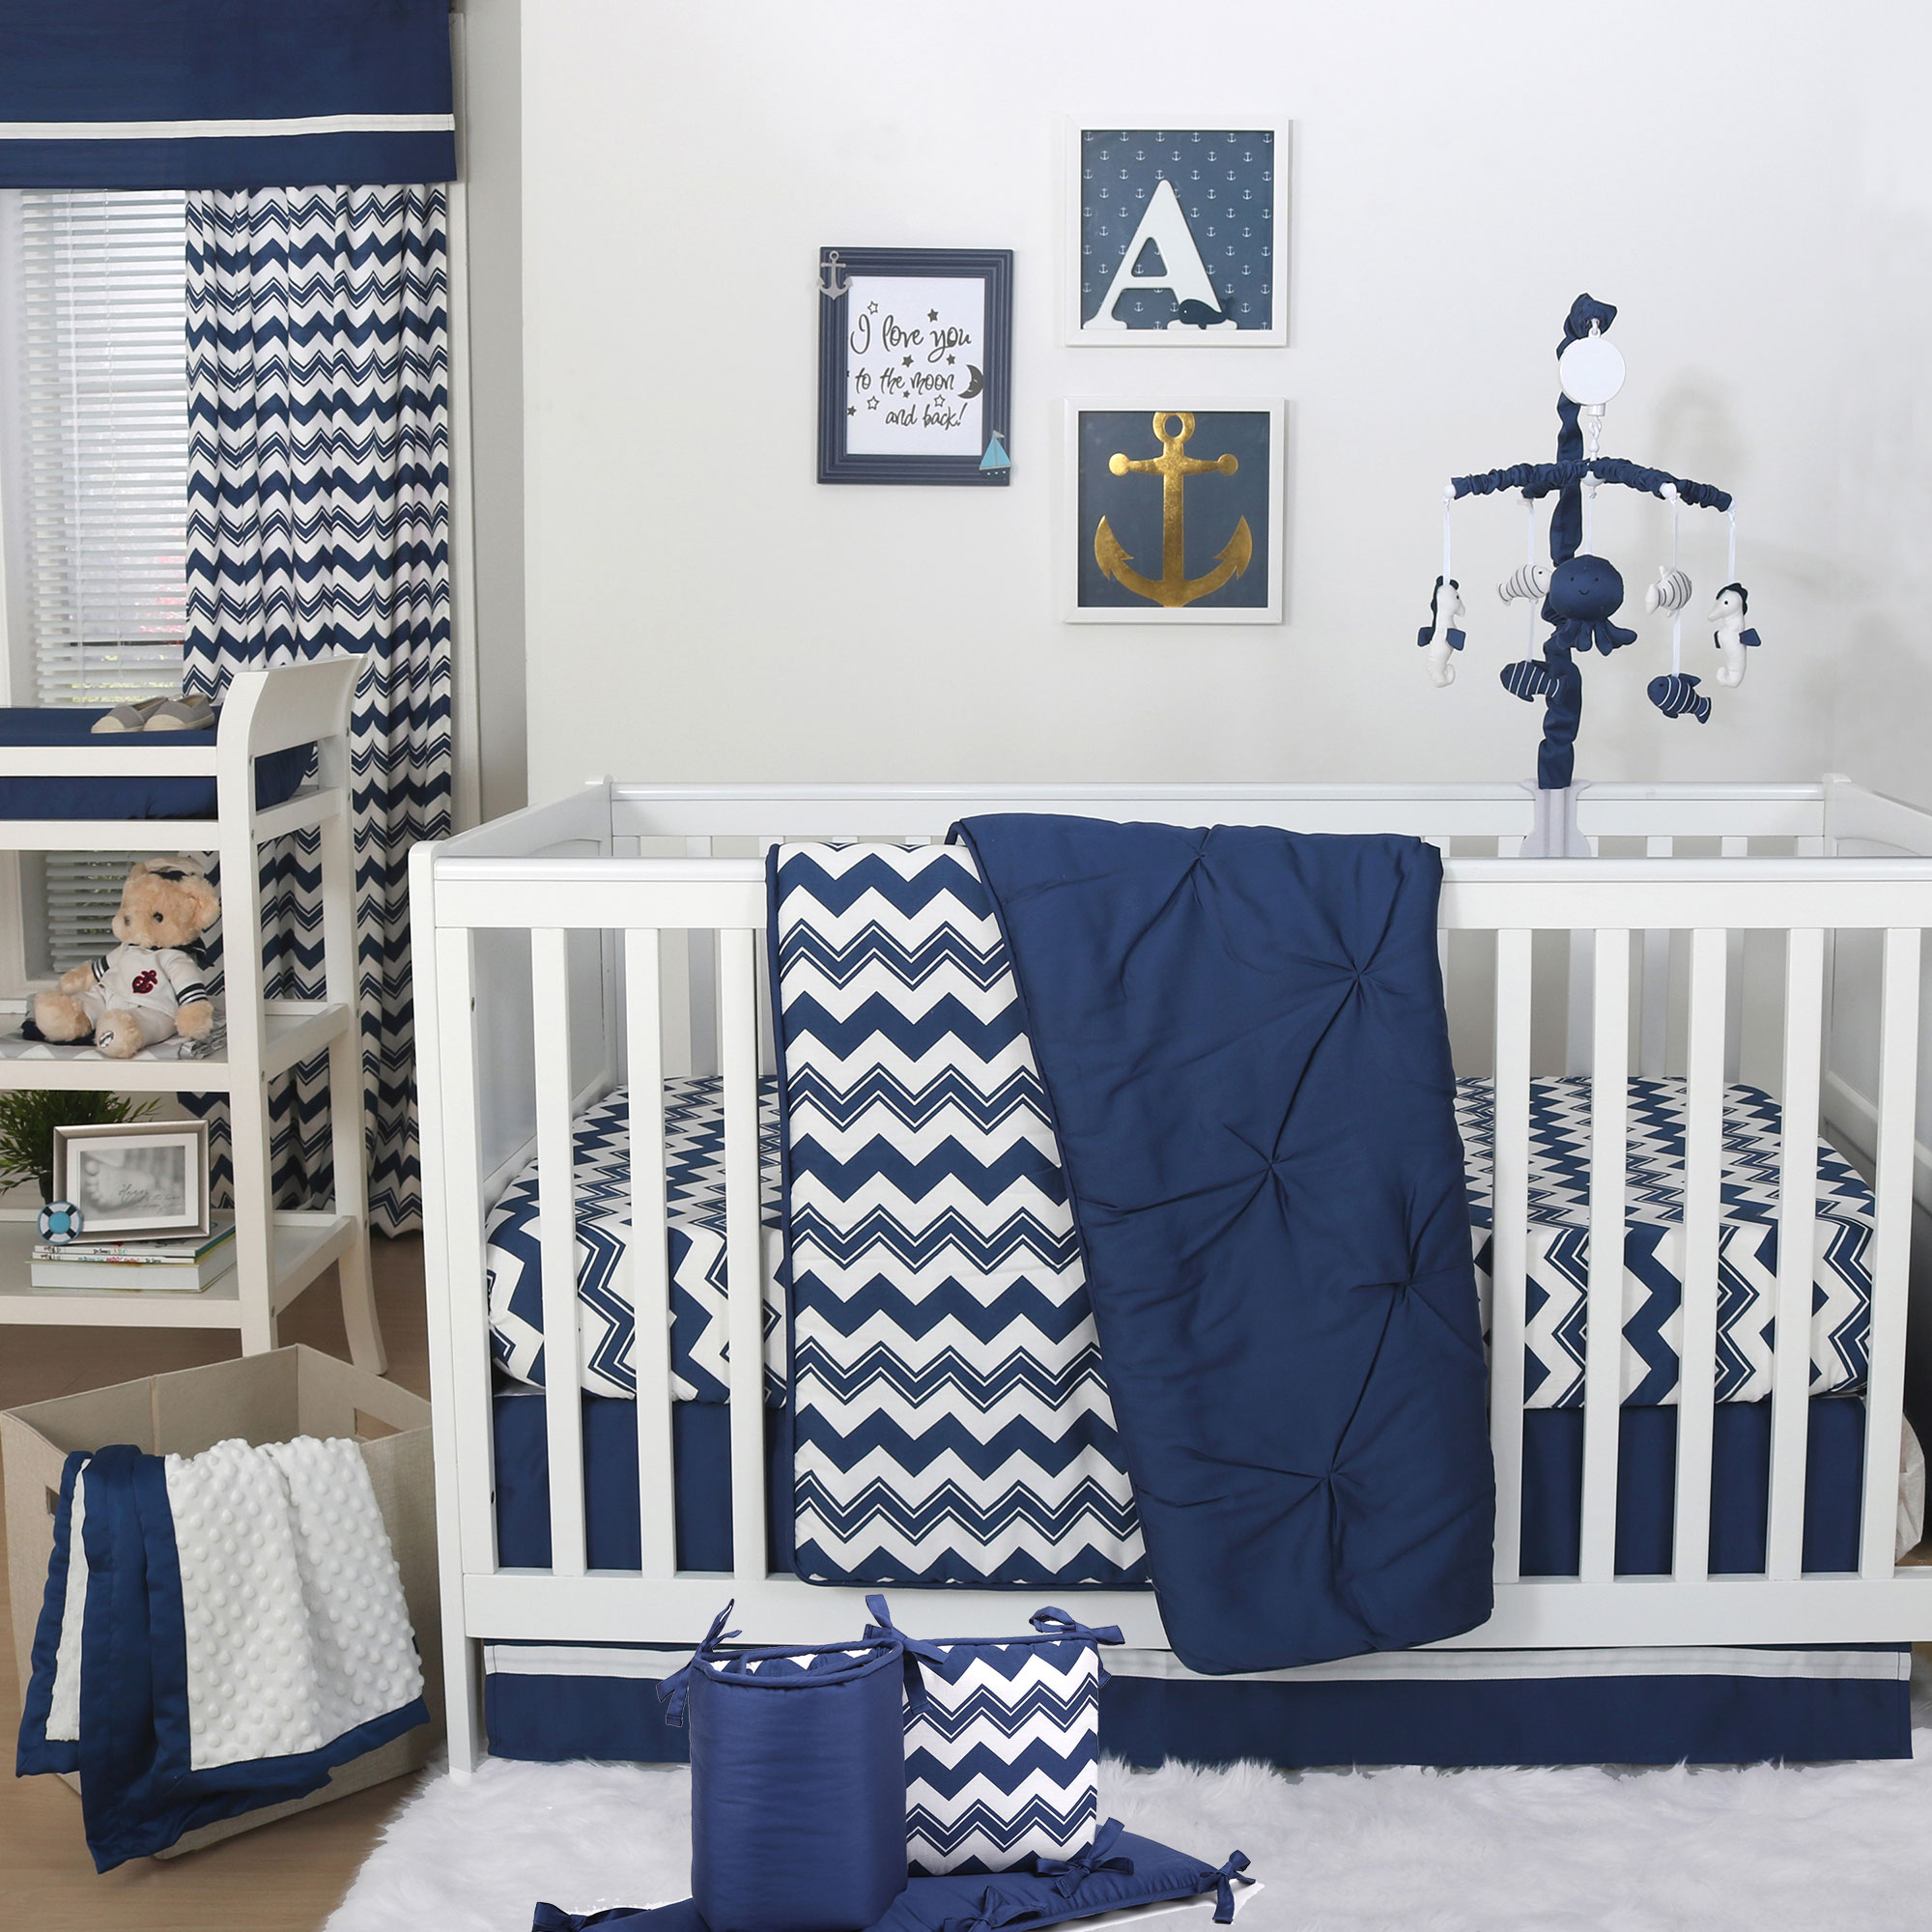 The Peanut Shell 5 Piece Baby Boy Crib Bedding Set - Navy Blue Zig Zag and Pintuck with Sealife Mobile - 100% Cotton Quilt, Bumper, Dust Ruffle, Fitted Sheet, and Mobile